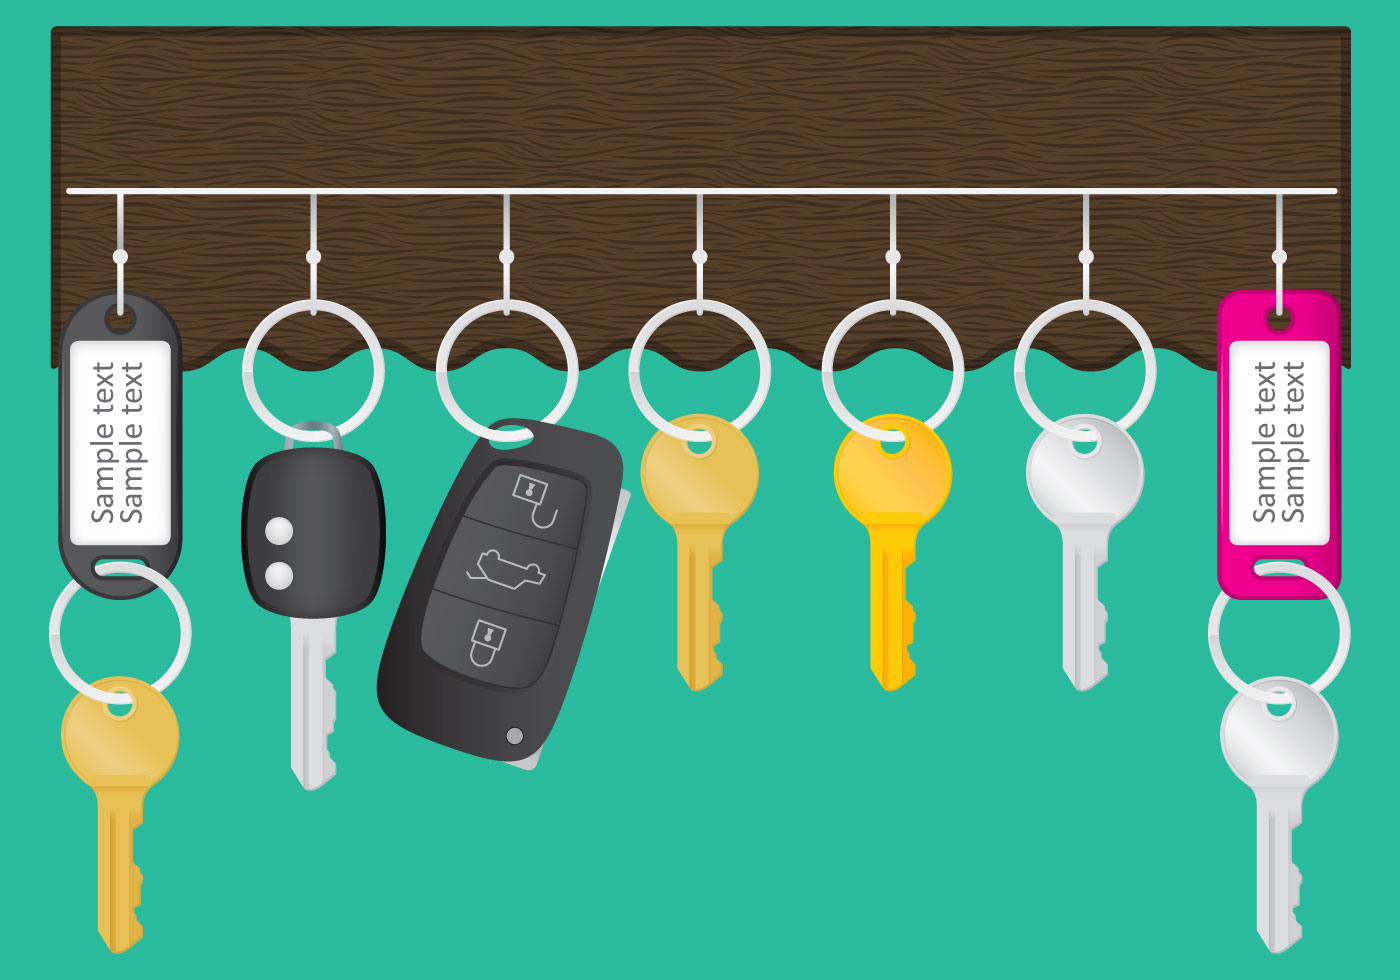 Wall Key Holder Vector Download Free Vector Art Stock